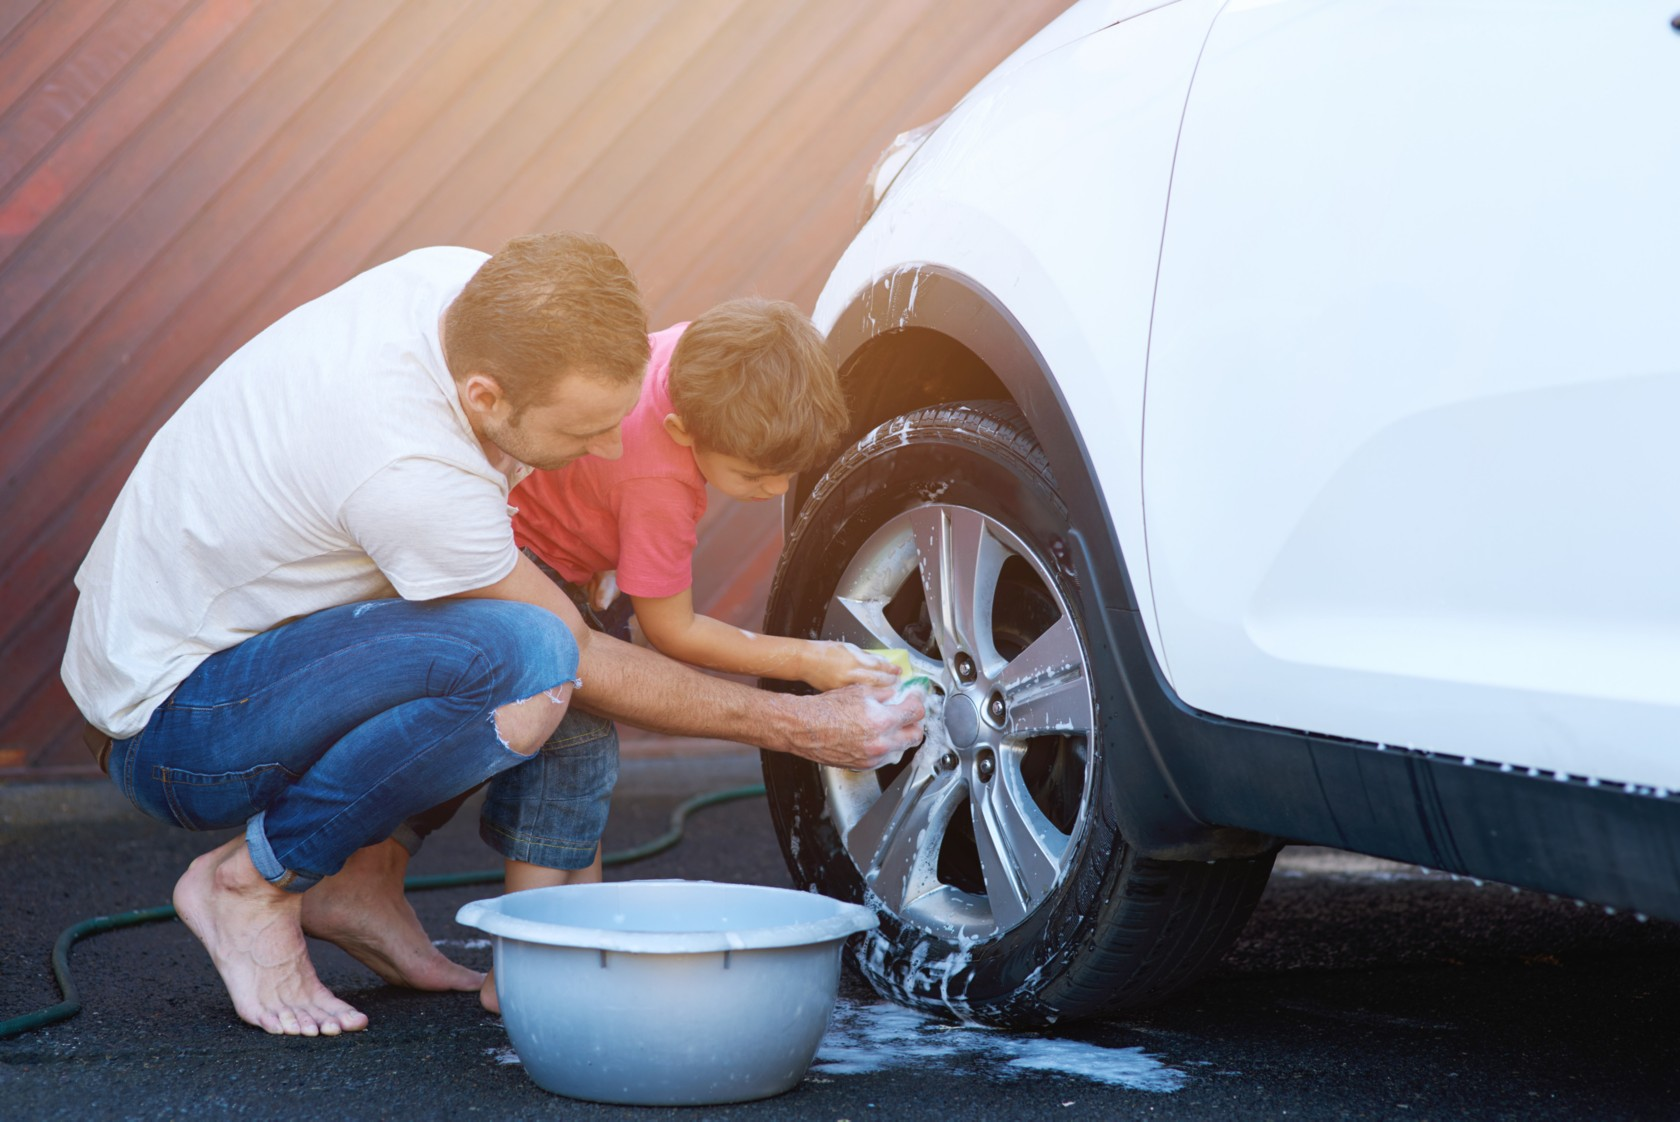 Washing a car with detergent